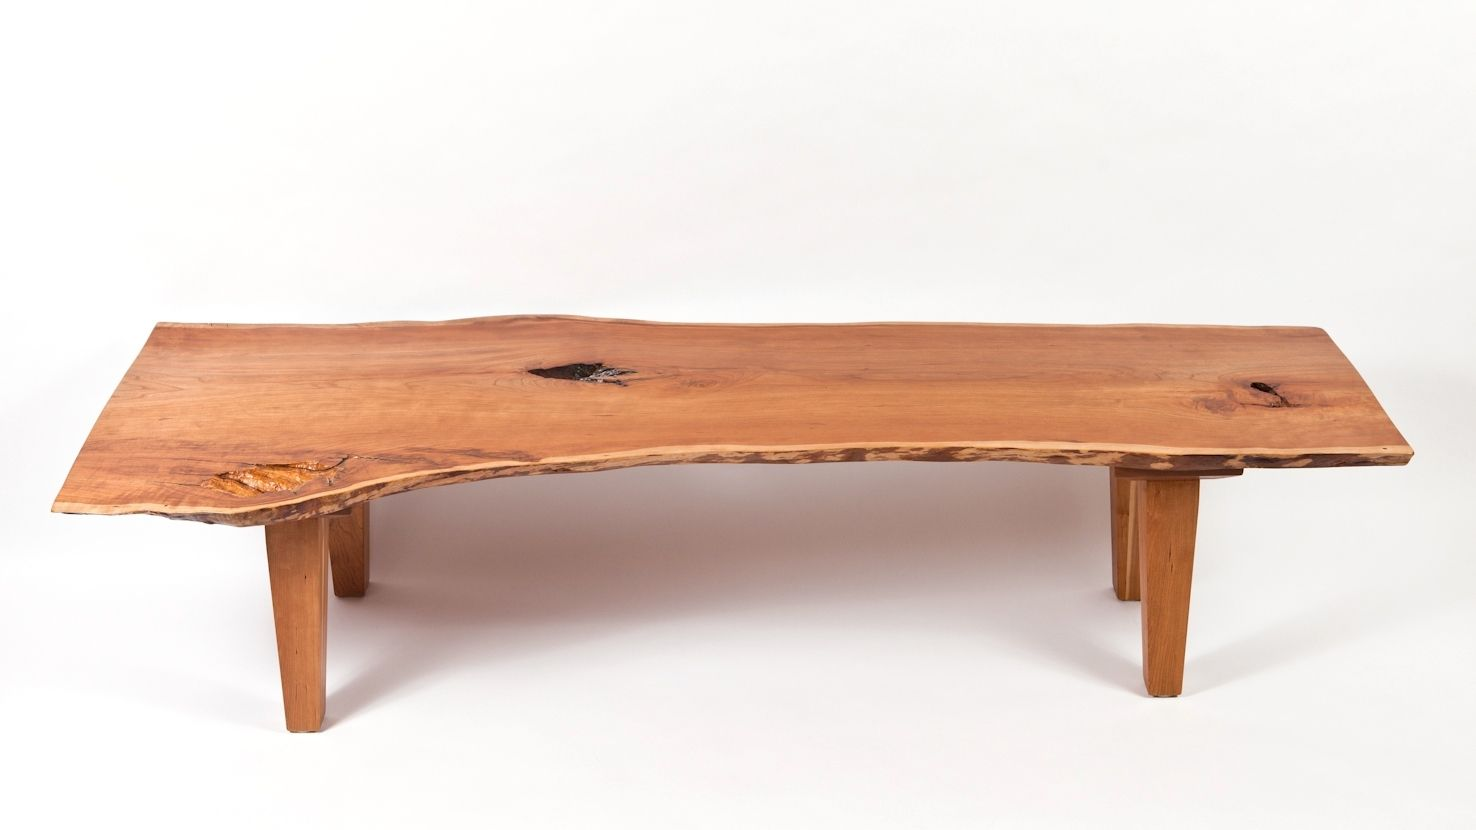 Custom Made Live Edge Vermont Cherry Coffee Table - Custom Made Live Edge Vermont Cherry Coffee Table By Outerlands